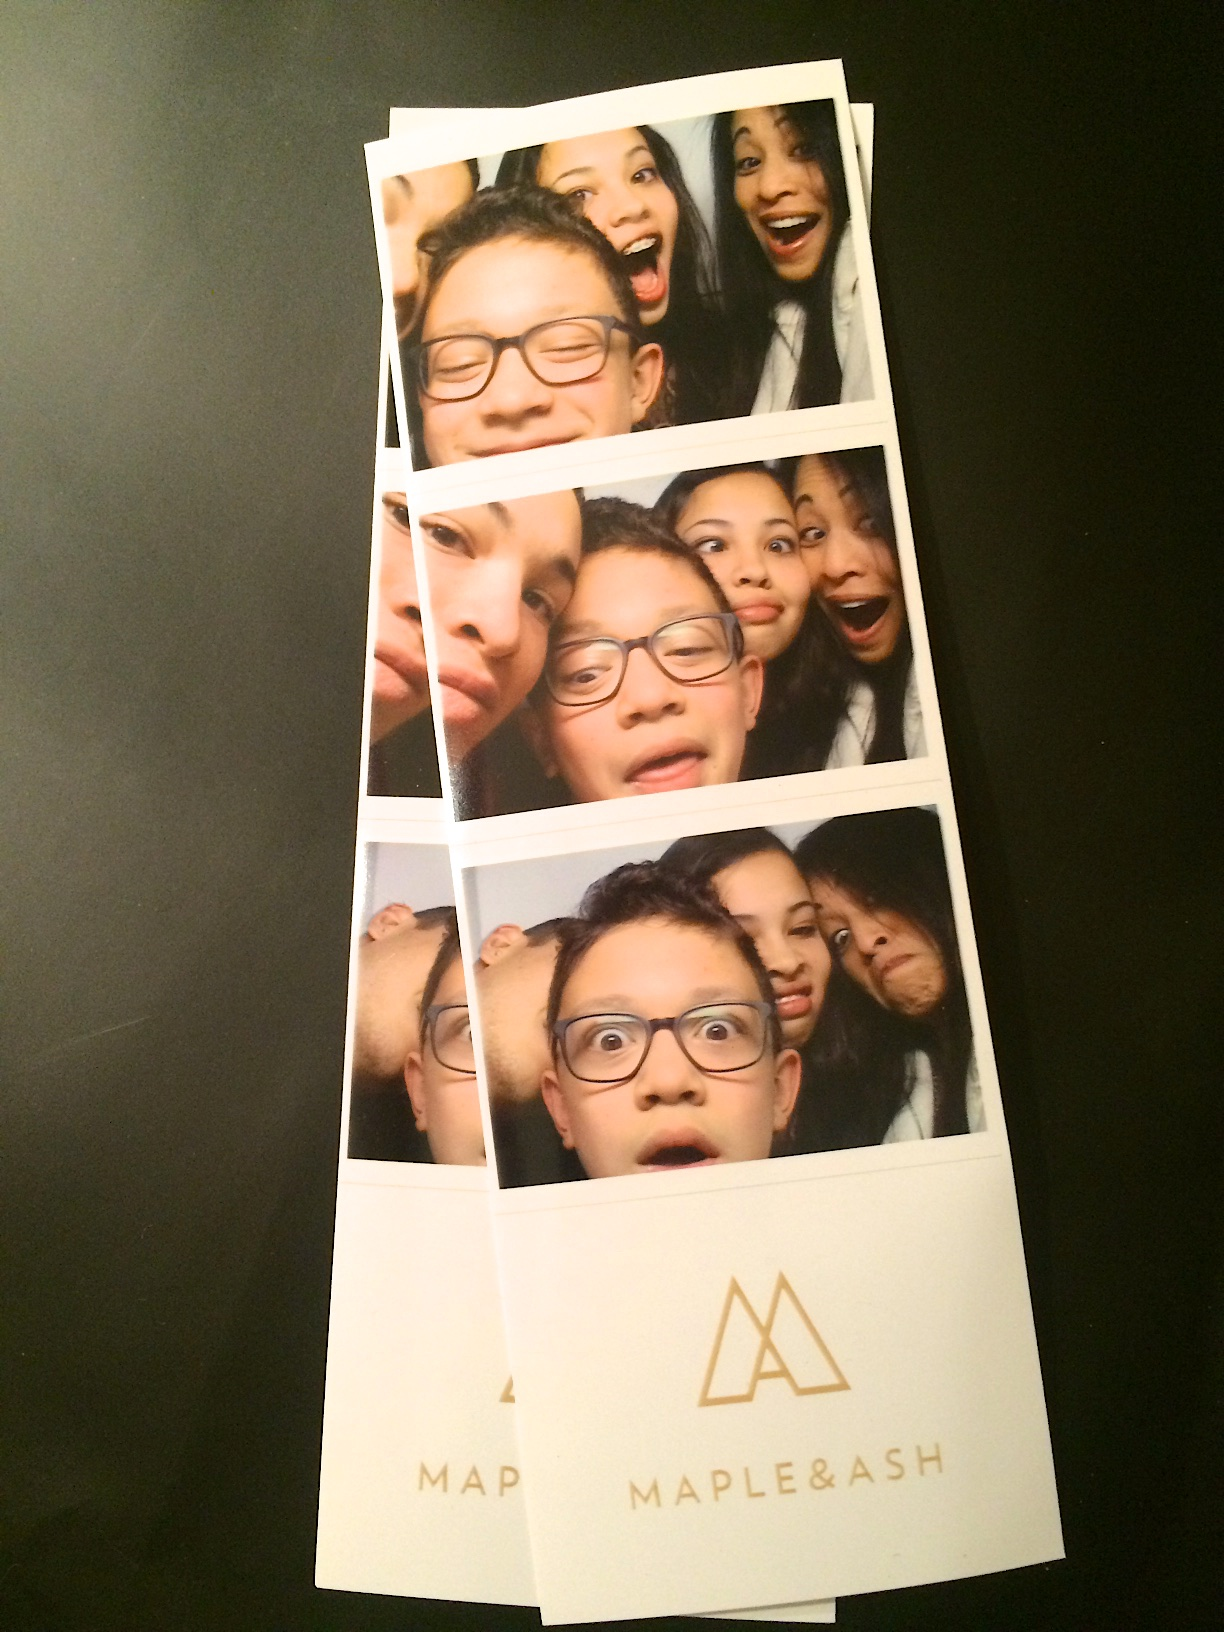 Photo Booth pics at Maple & Ash